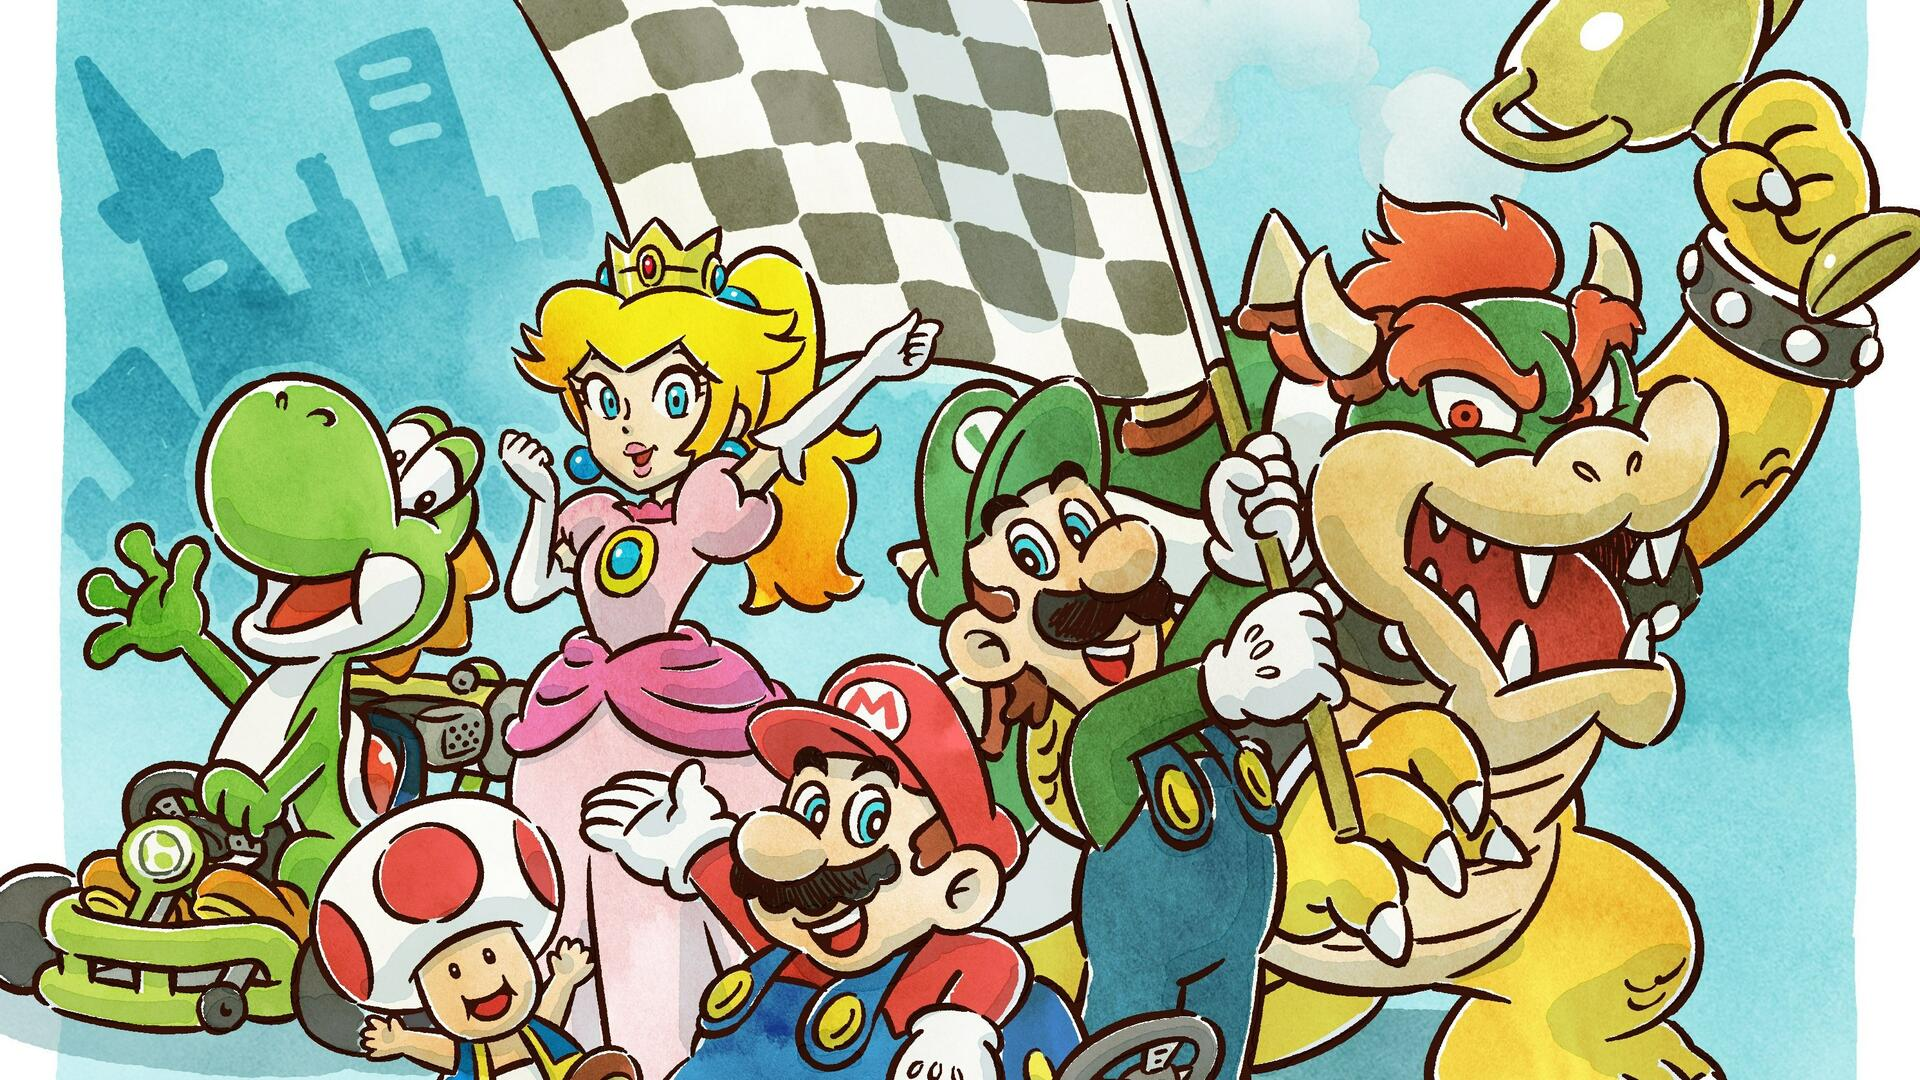 Mario Kart Tour Friends - Can You Play Multiplayer Against Your Friends?